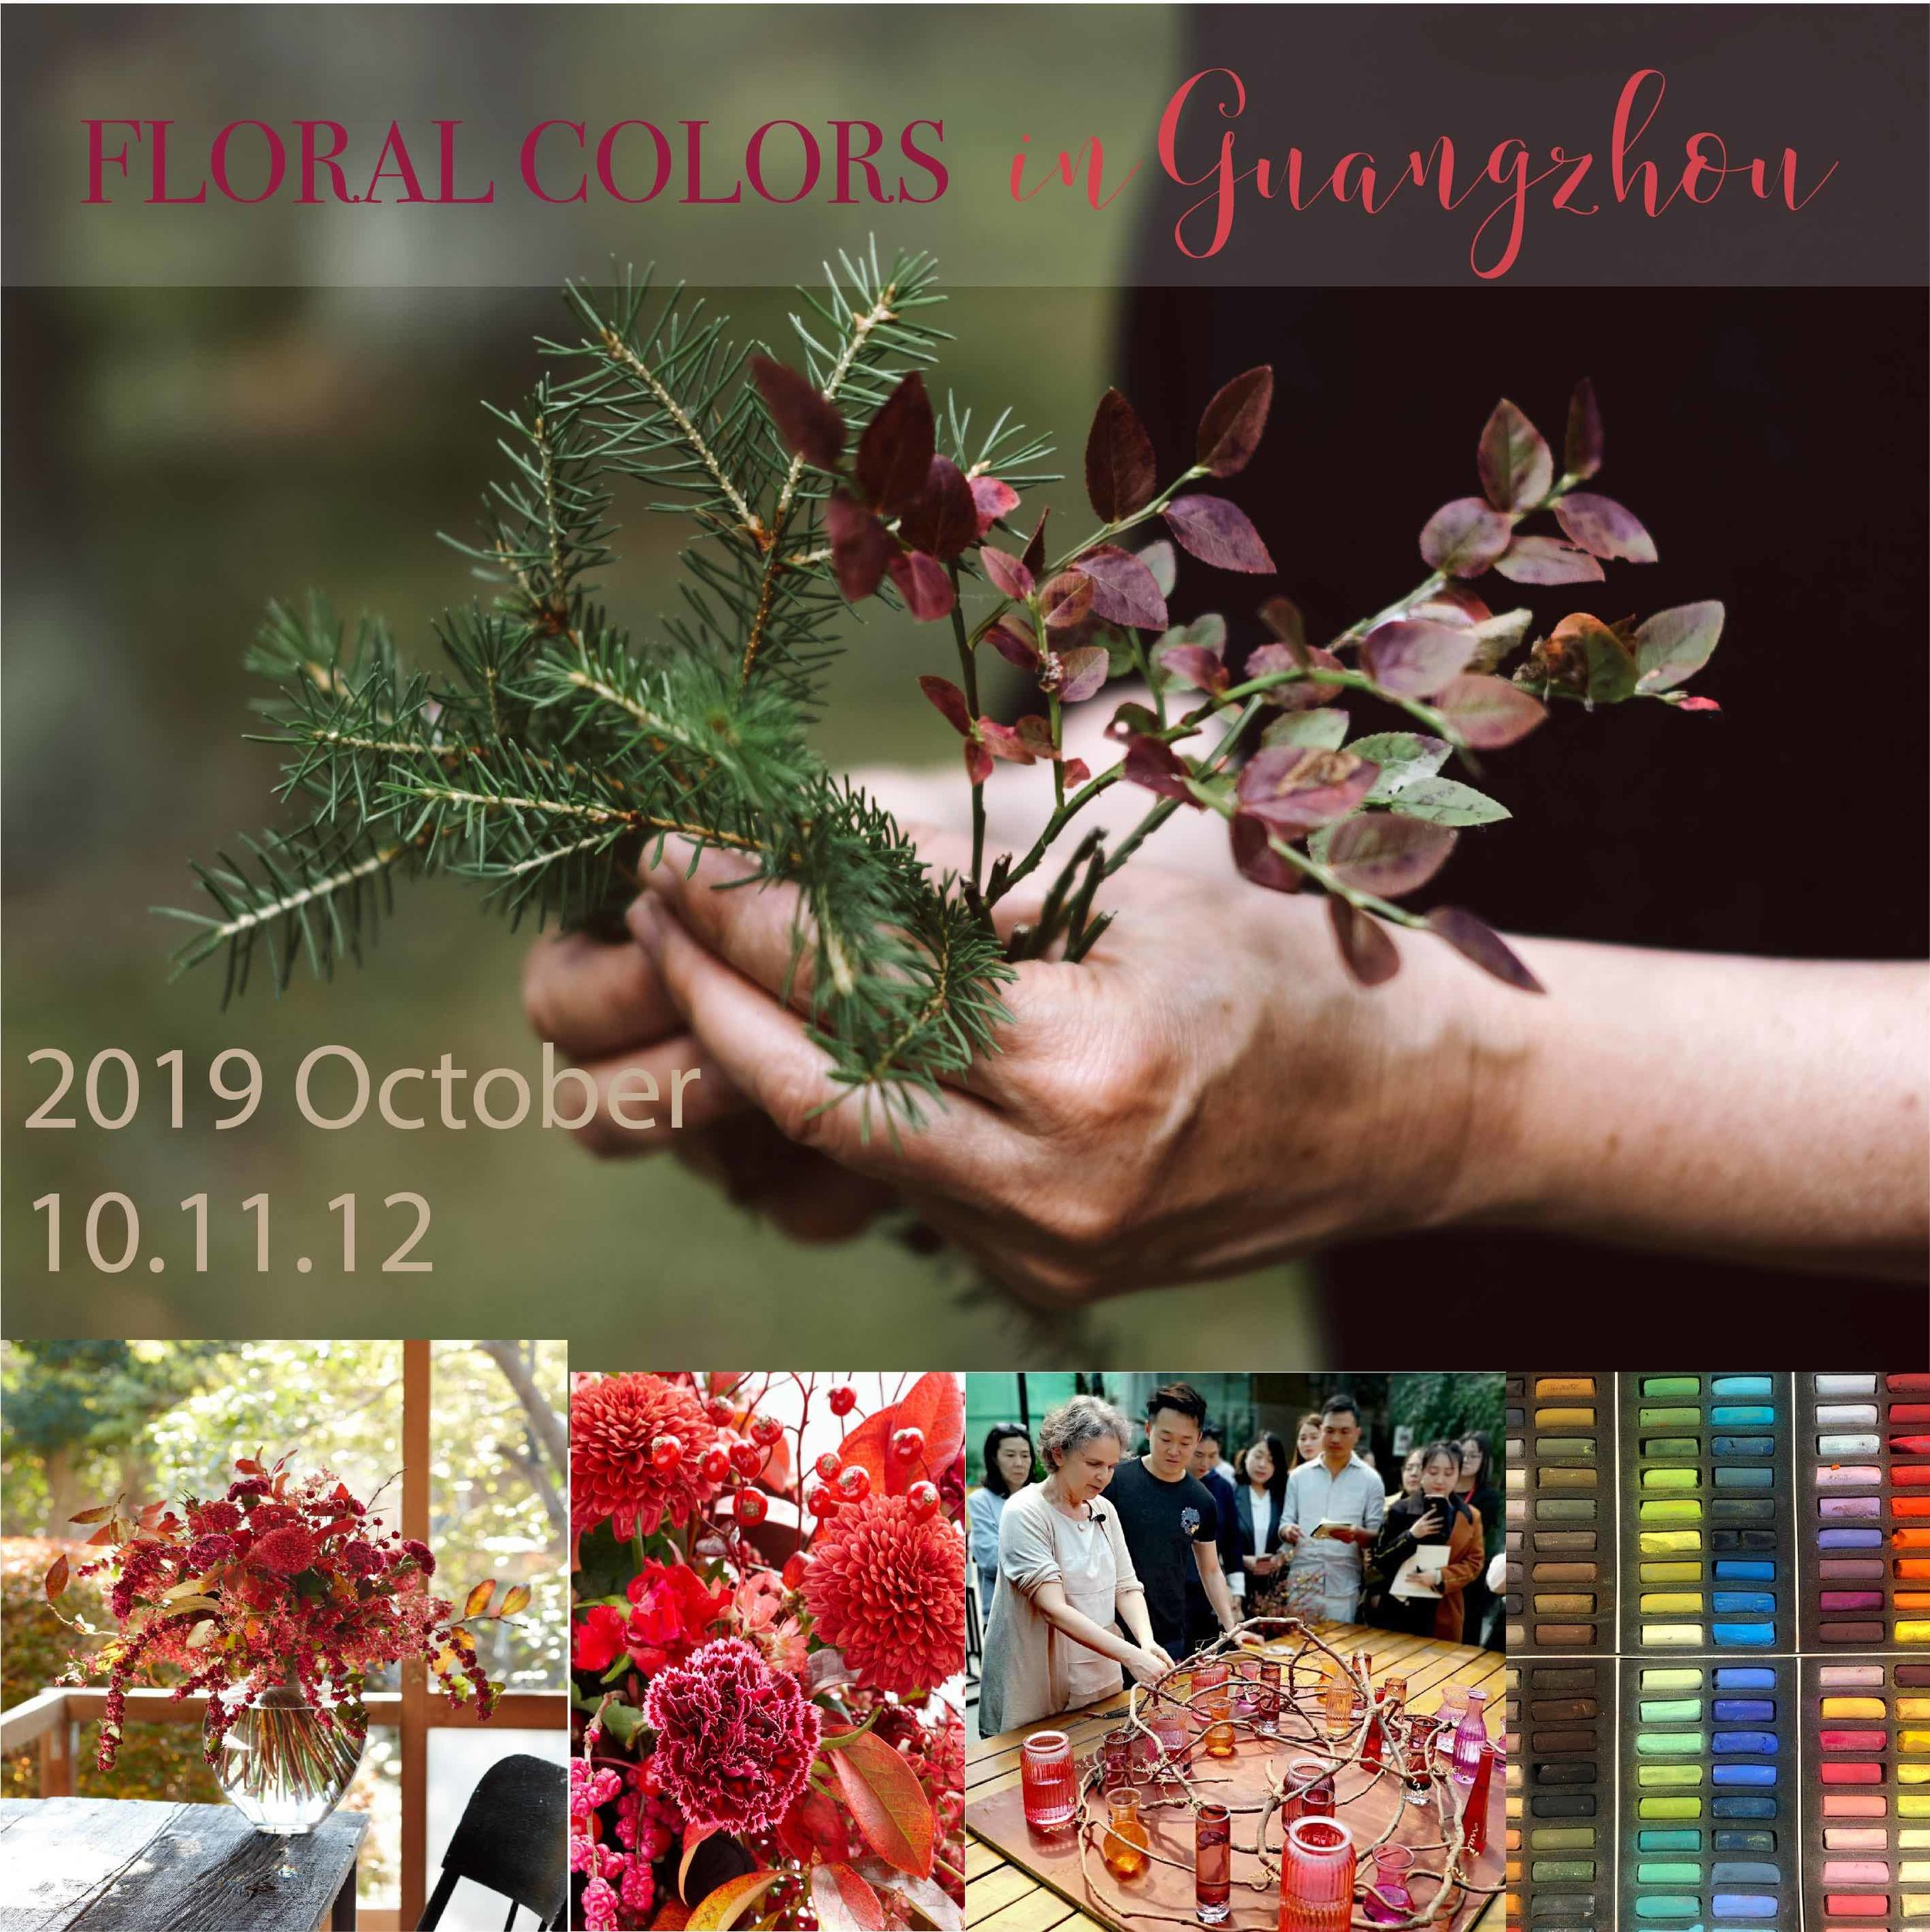 10th of October in Guangzhou